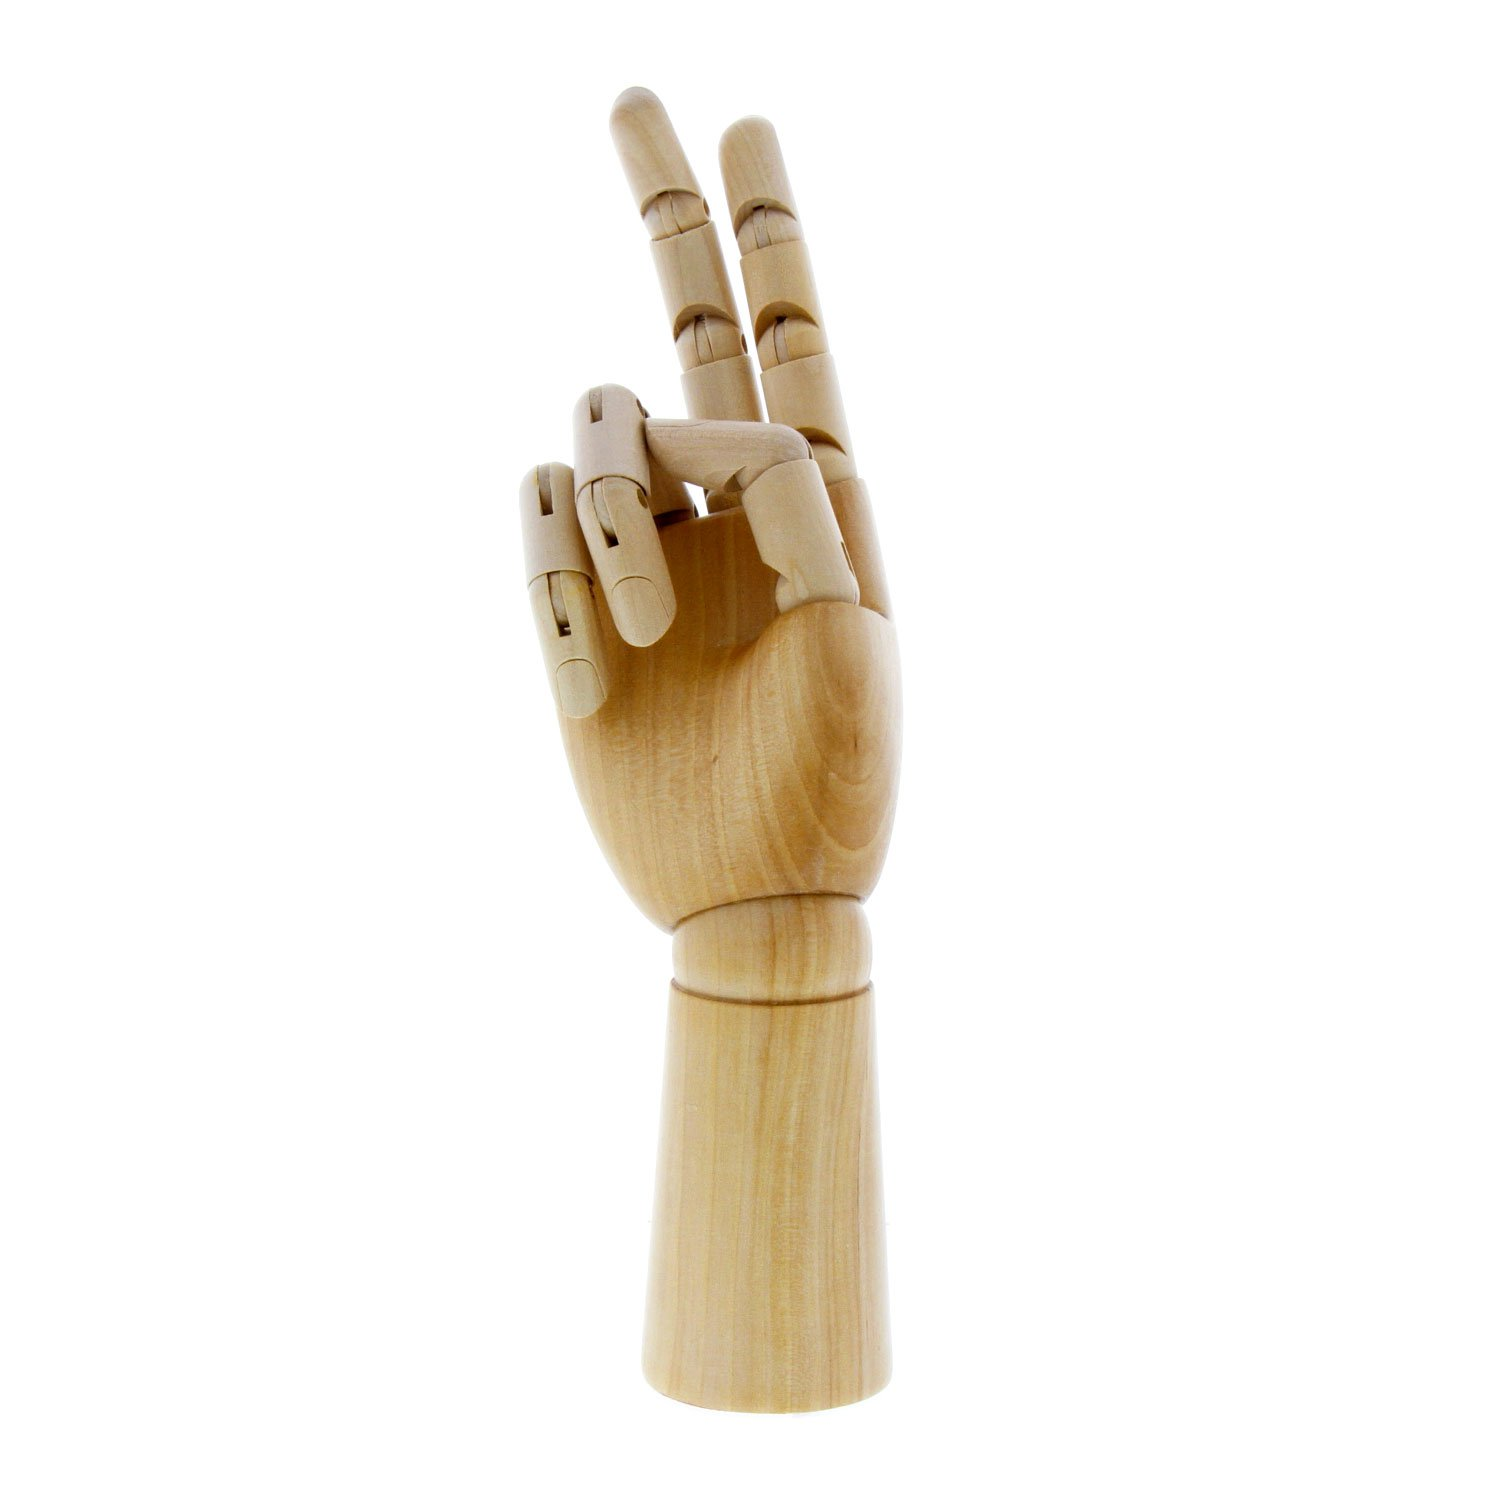 US Art Supply Wood Artist Drawing Manikin Articulated Mannequin with Wooden Flexible Fingers - Perfect for drawing the human hand (12'' Right Hand)